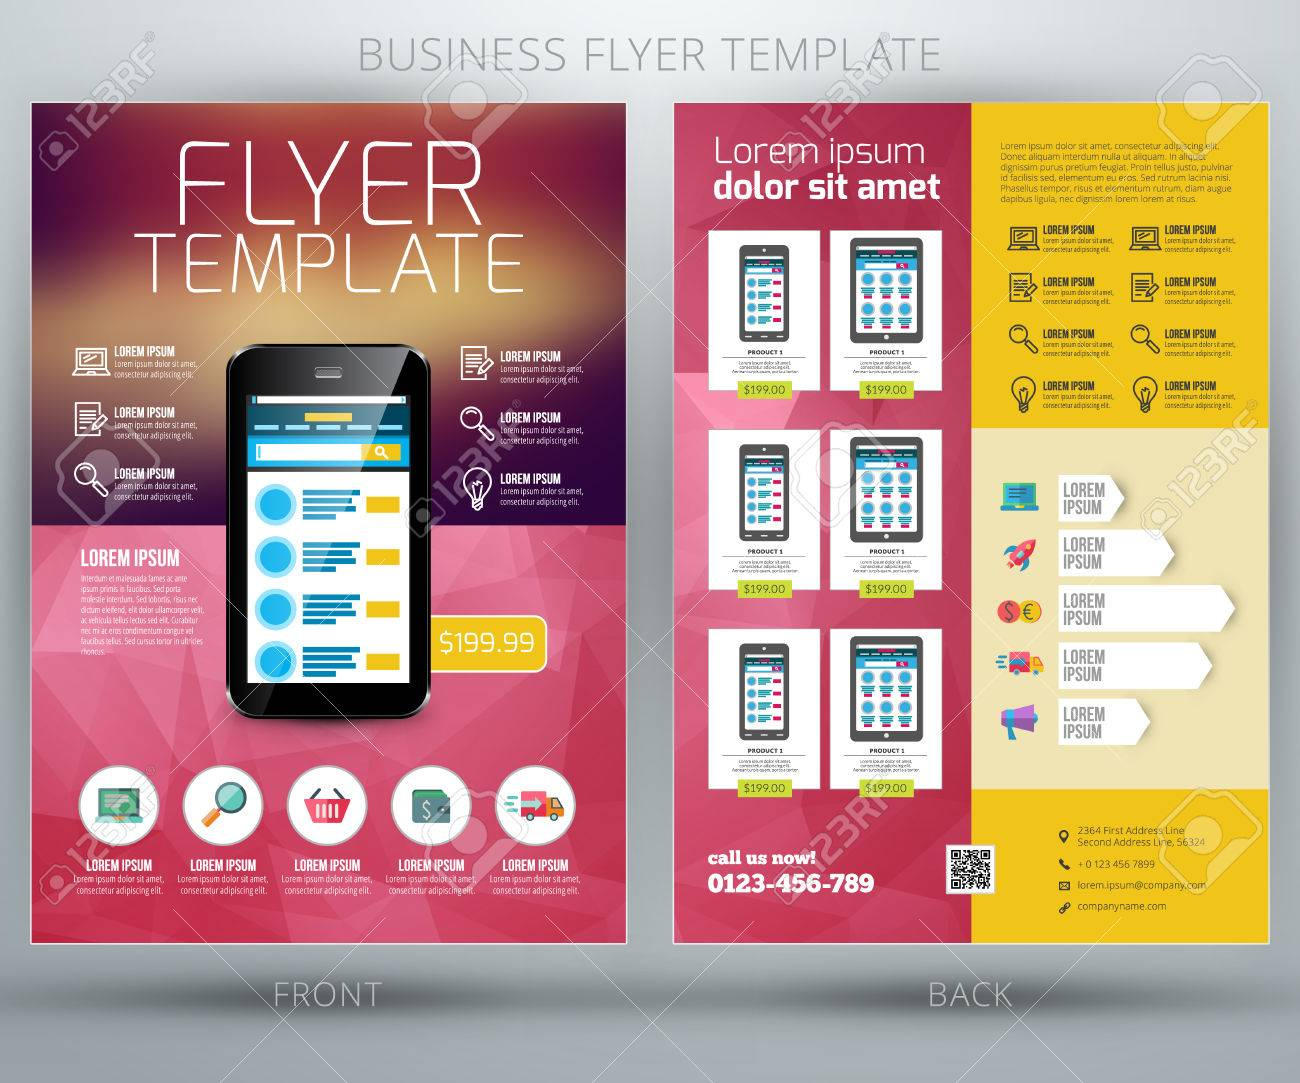 vector business flyer template for online shop royalty free